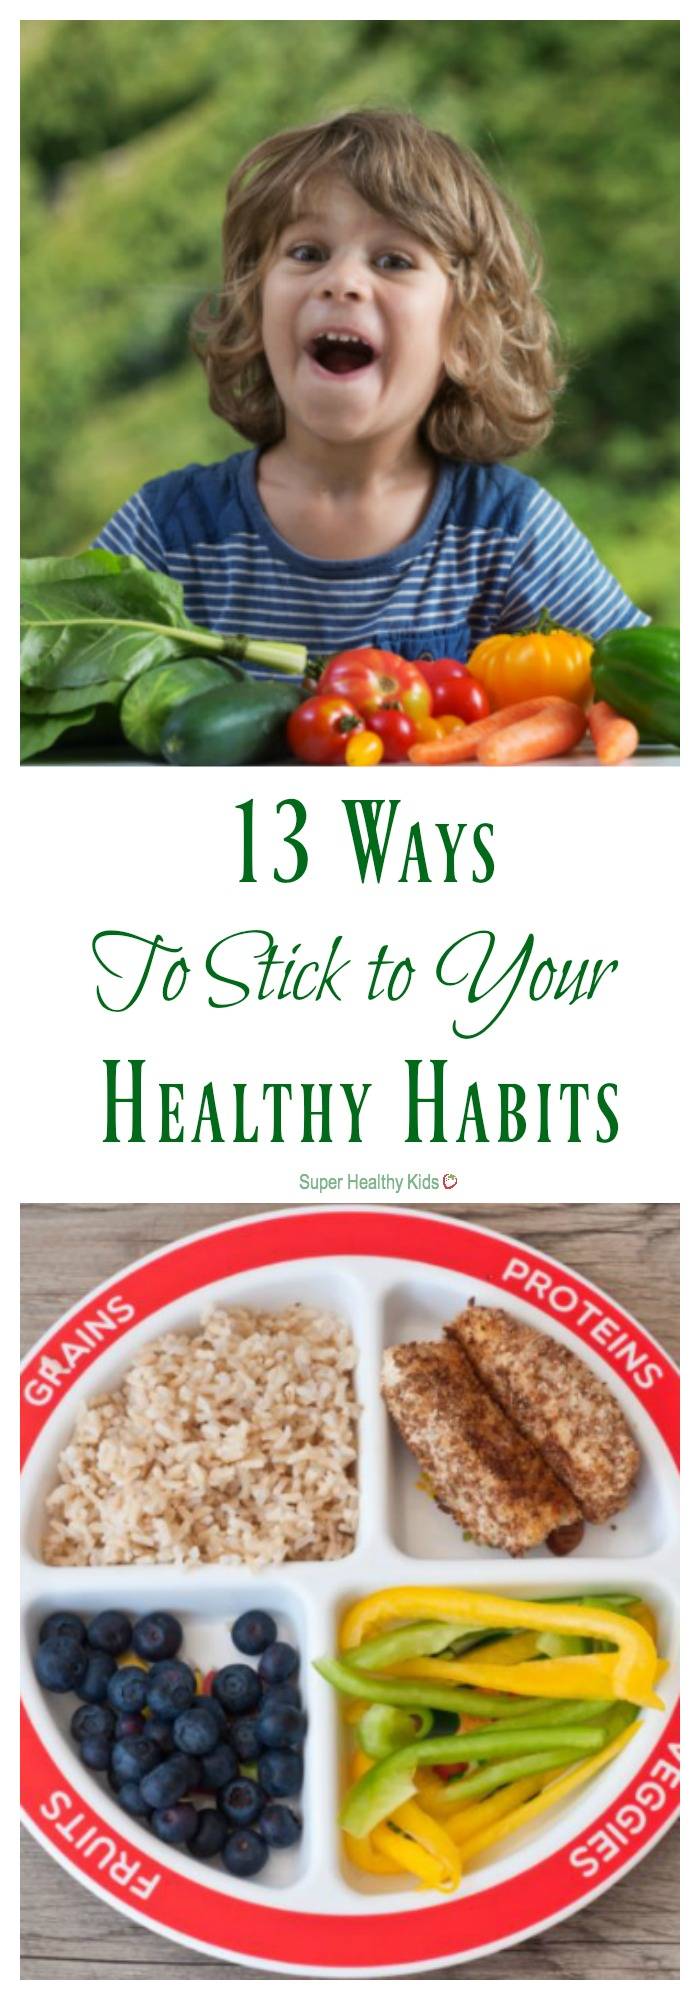 HEALTHY HABITS - 13 Ways to Help You Stick to Your Healthy Habits. The busiest of families can have healthy eating habits using these tips. Pick a few to try now and add more over time to build a lifetime of healthy habits. http://www.superhealthykids.com/13-ways-help-stick-healthy-habits/